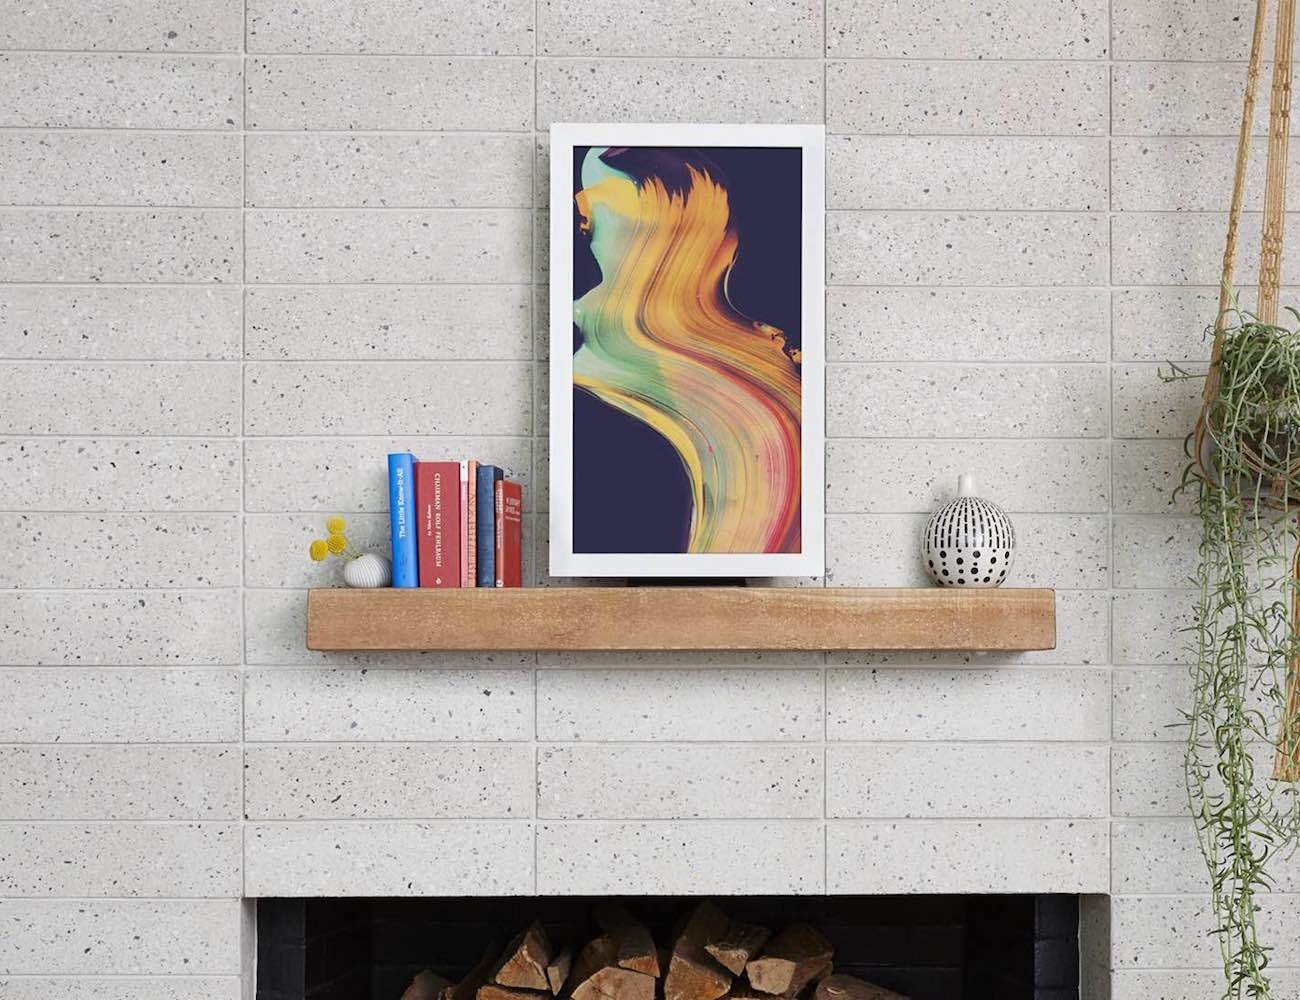 EO2 Digital Art Display by Electric Objects